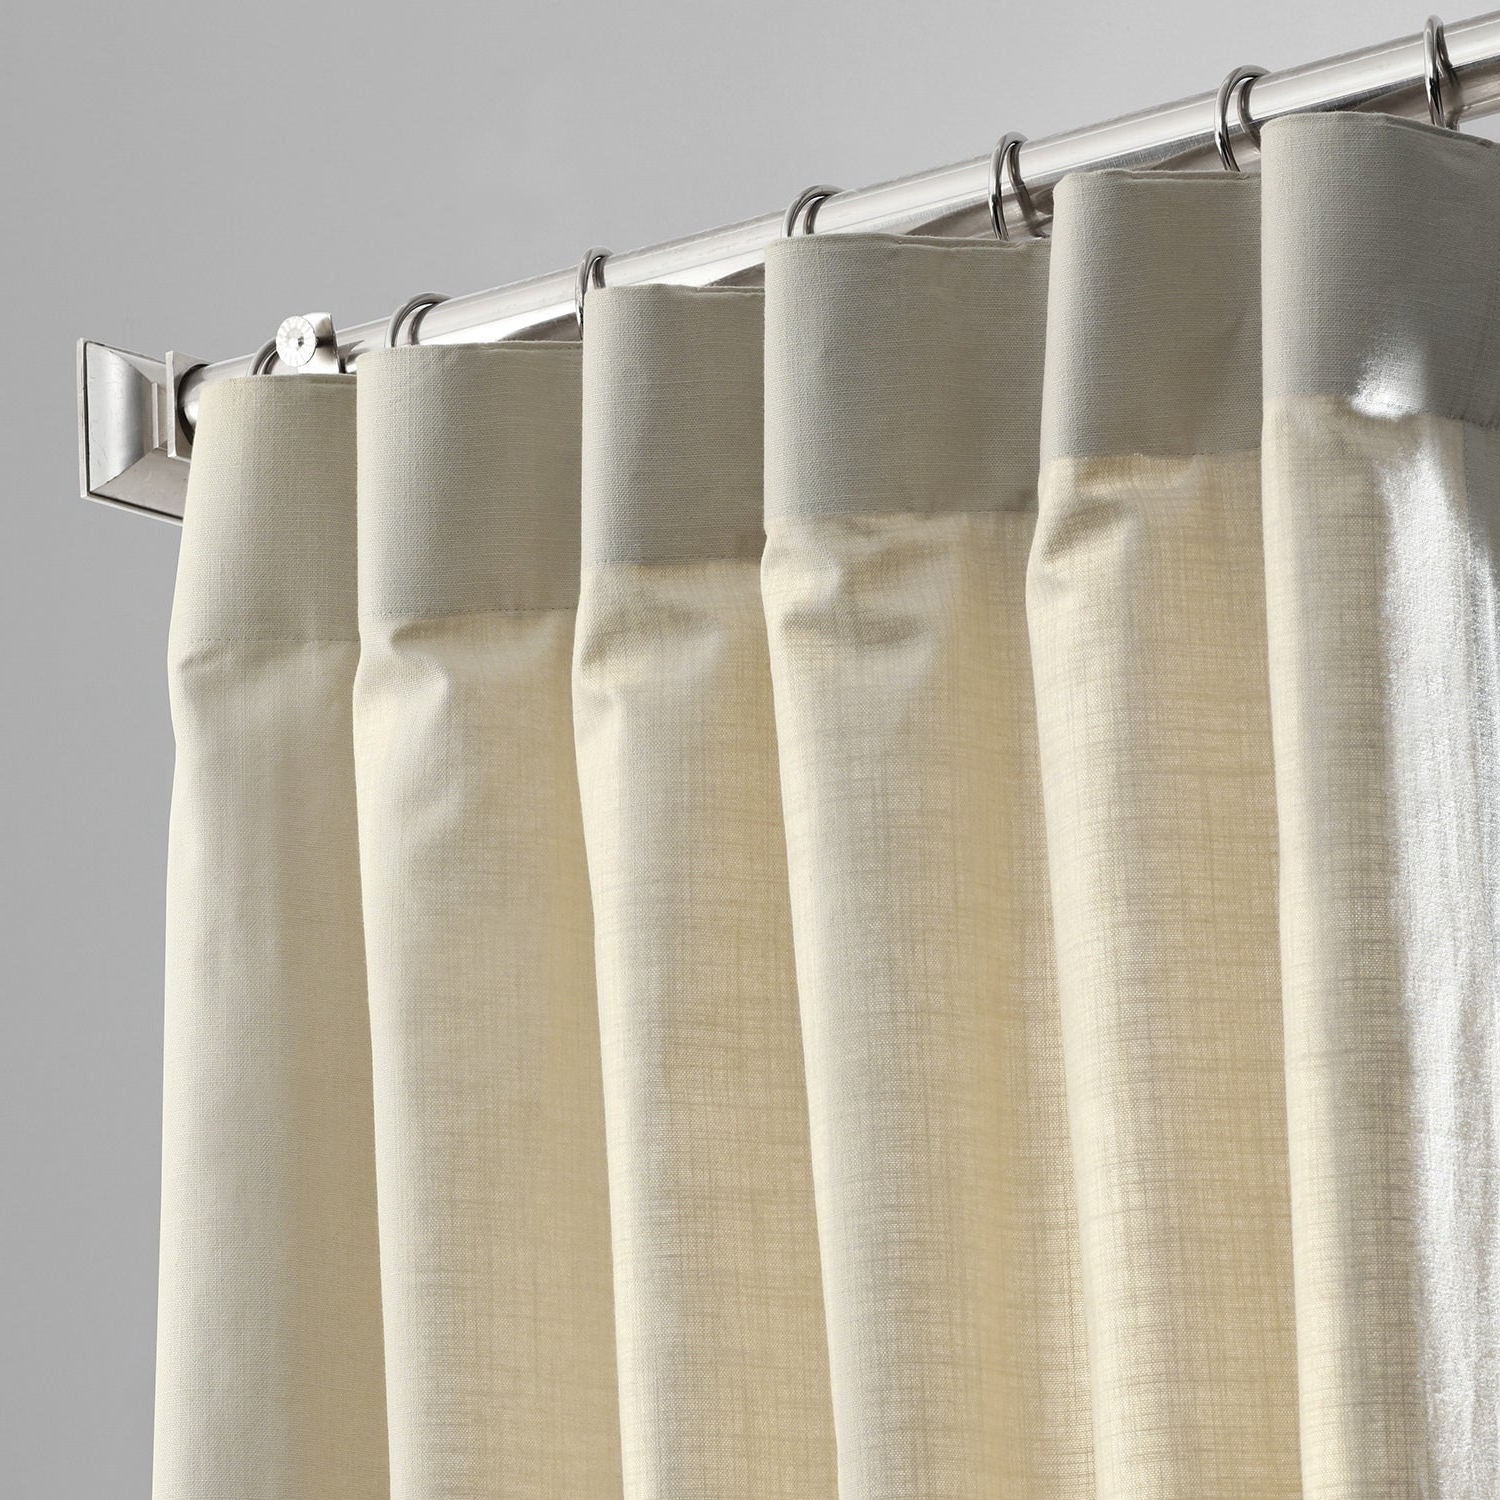 Solid Country Cotton Linen Weave Curtain Panels Inside Popular Exclusive Fabrics Solid Country Cotton Linen Weave Curtain Panel (View 14 of 20)